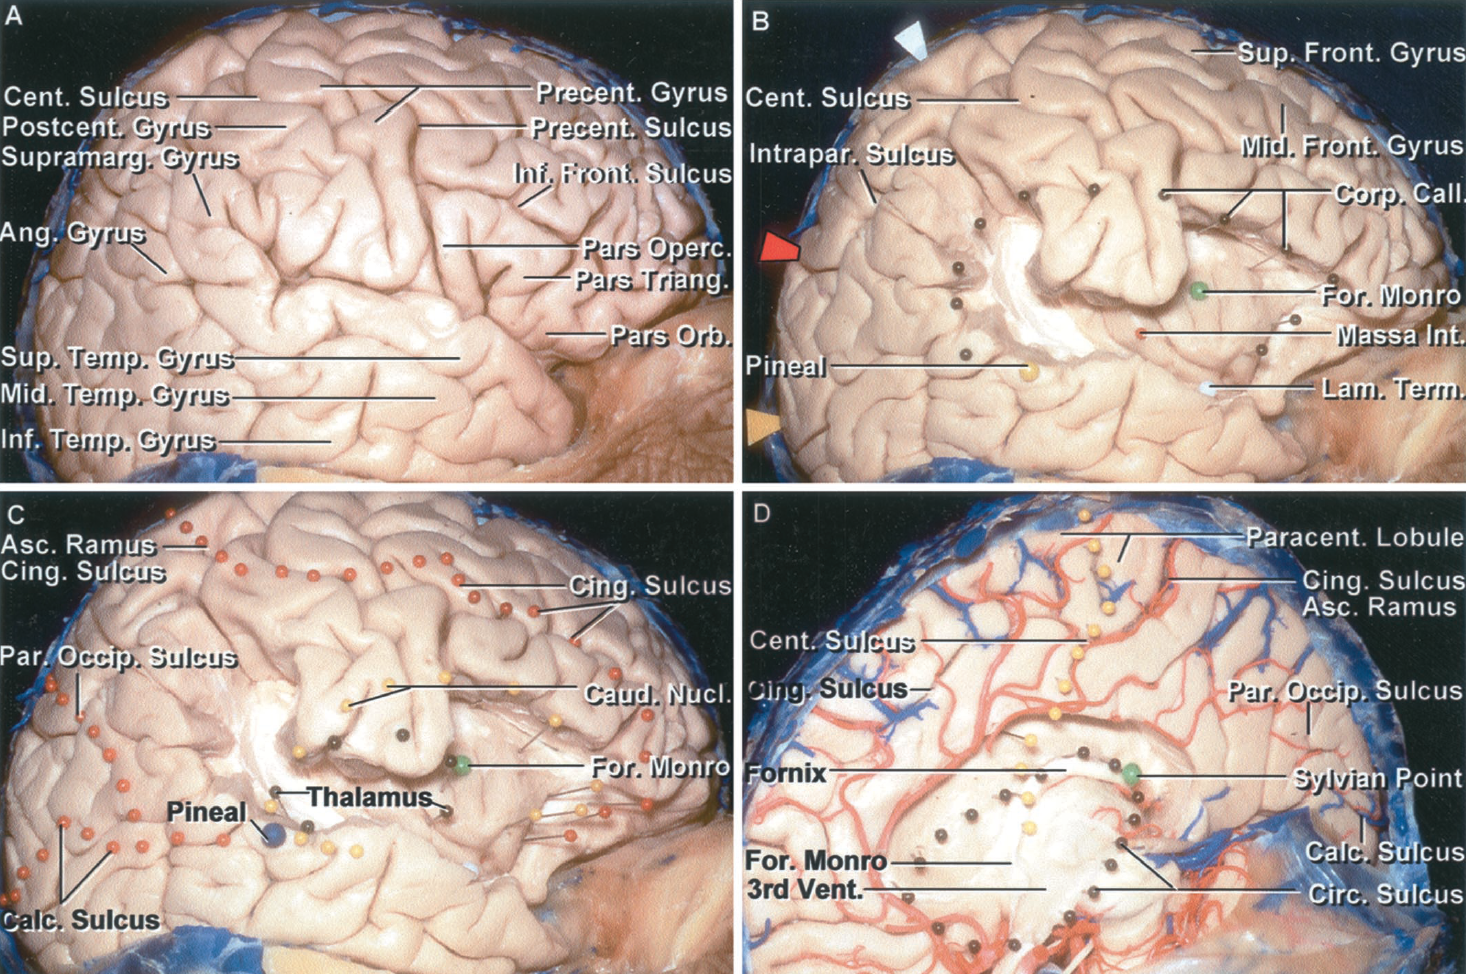 Figure 1.5. Relationships between the medial and lateral surface. A, lateral view, right cerebrum. The inferior frontal gyrus is formed by the pars orbitalis, triangularis, and opercularis. The pre- and postcentral gyri are located between the pars opercularis anteriorly and supramarginal gyrus posteriorly. The precentral gyrus is broken into two gyral strips. B, the pars opercularis, triangularis, and orbitalis, and the superior temporal gyrus and part of the supramarginal gyrus have been removed to expose the insula. A number of pins have been placed on the cortical surface to identify the deep location of various structures: the green pin indicates the foramen of Monro; the red pin, the massa intermedia; yellow pin, the pineal gland; white pin, the lamina terminalis. The ovoid group of dark pins identifies the outer margin of the corpus callosum. The arrows along the posterior half of the superior margin identify the site at which sulci on the medial surface intersect the superior margin as follows: white arrow, the ascending (marginal) ramus of cingulate sulcus that marks the posterior edge of the paracentral lobule; red arrow, the parieto-occipital sulcus; and yellow arrow, the calcarine sulcus. C, red pins have been placed on the convexity directly lateral to the course of the calcarine and parieto occipital sulci and the cingulate sulcus and its ascending ramus on the medial surface. The ascending ramus of the cingulate sulcus extends along the posterior edge of the paracentral lobule formed by the upper end of the pre- and postcentral gyrus overlapping onto the medial surface of the hemisphere. The parieto-occipital and calcarine sulci on the medial surface converge and join in a Y-shaped configuration. Small black pins outline the thalamus. The yellow pins outline the outer margin of the caudate nucleus. The large blue pinhead is located at the level of the pineal, and the green pin is located directly lateral to the foramen of Monro. D, medial surface of the same hemisphere. The yellow pins mark the location of the central sulcus. The lower end of the central sulcus is located just behind the foramen of Monro as is also shown in B and C. The dark pins outline the circular sulcus of the insula. The green pin is positioned at the sylvian point where the last branch of the middle cerebral artery turns laterally from the surface of the insula to reach the cortical surface. Ang., angular; Asc., ascending; Calc., calcarine; Call., callosum; Caud., caudate; Cent., central; Cing., cingulate; Circ., circular; Corp., corpus; For., foramen; Front., frontal; Inf., inferior; Int., intermedia; Intrapar., intraparietal; Lam., lamina; Mid., middle; Nucl., nucleus; Operc., opercularis; Orb., orbitalis; Par. Occip., parieto- occipital; Paracent., paracentral; Postcent., postcentral; Precent., precentral; Sup., superior; Supramarg., supramarginal; Temp., temporal; Term., terminalis; Triang., triangularis; Vent., ventricle.